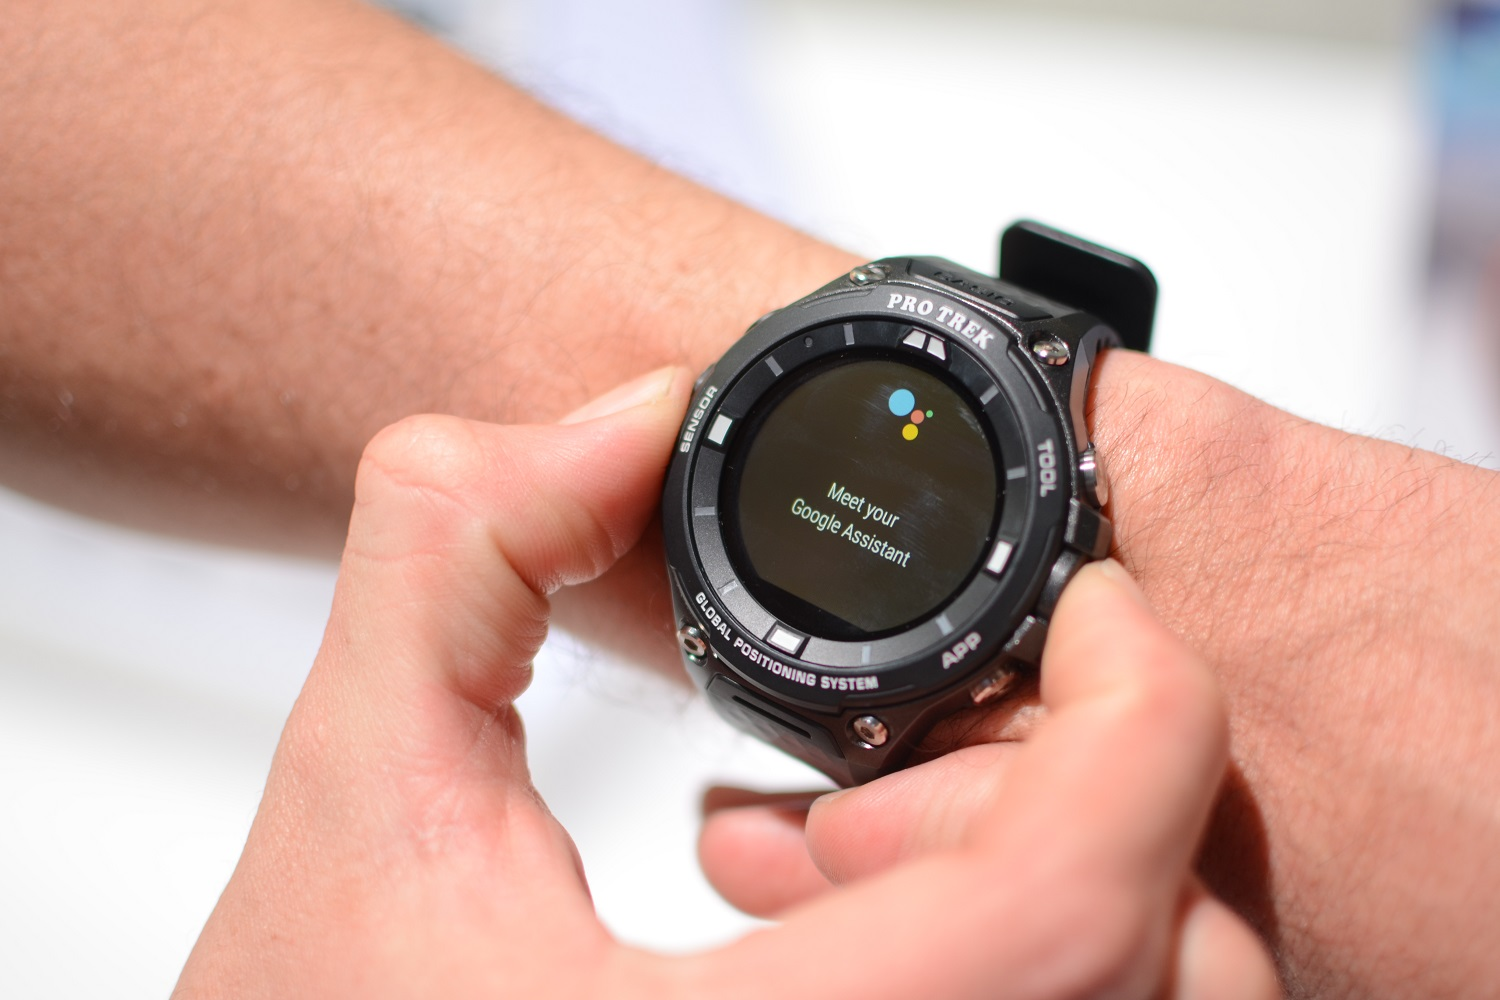 Casio WSD-F20 Android Wear 2.0 Smartwatch Announced